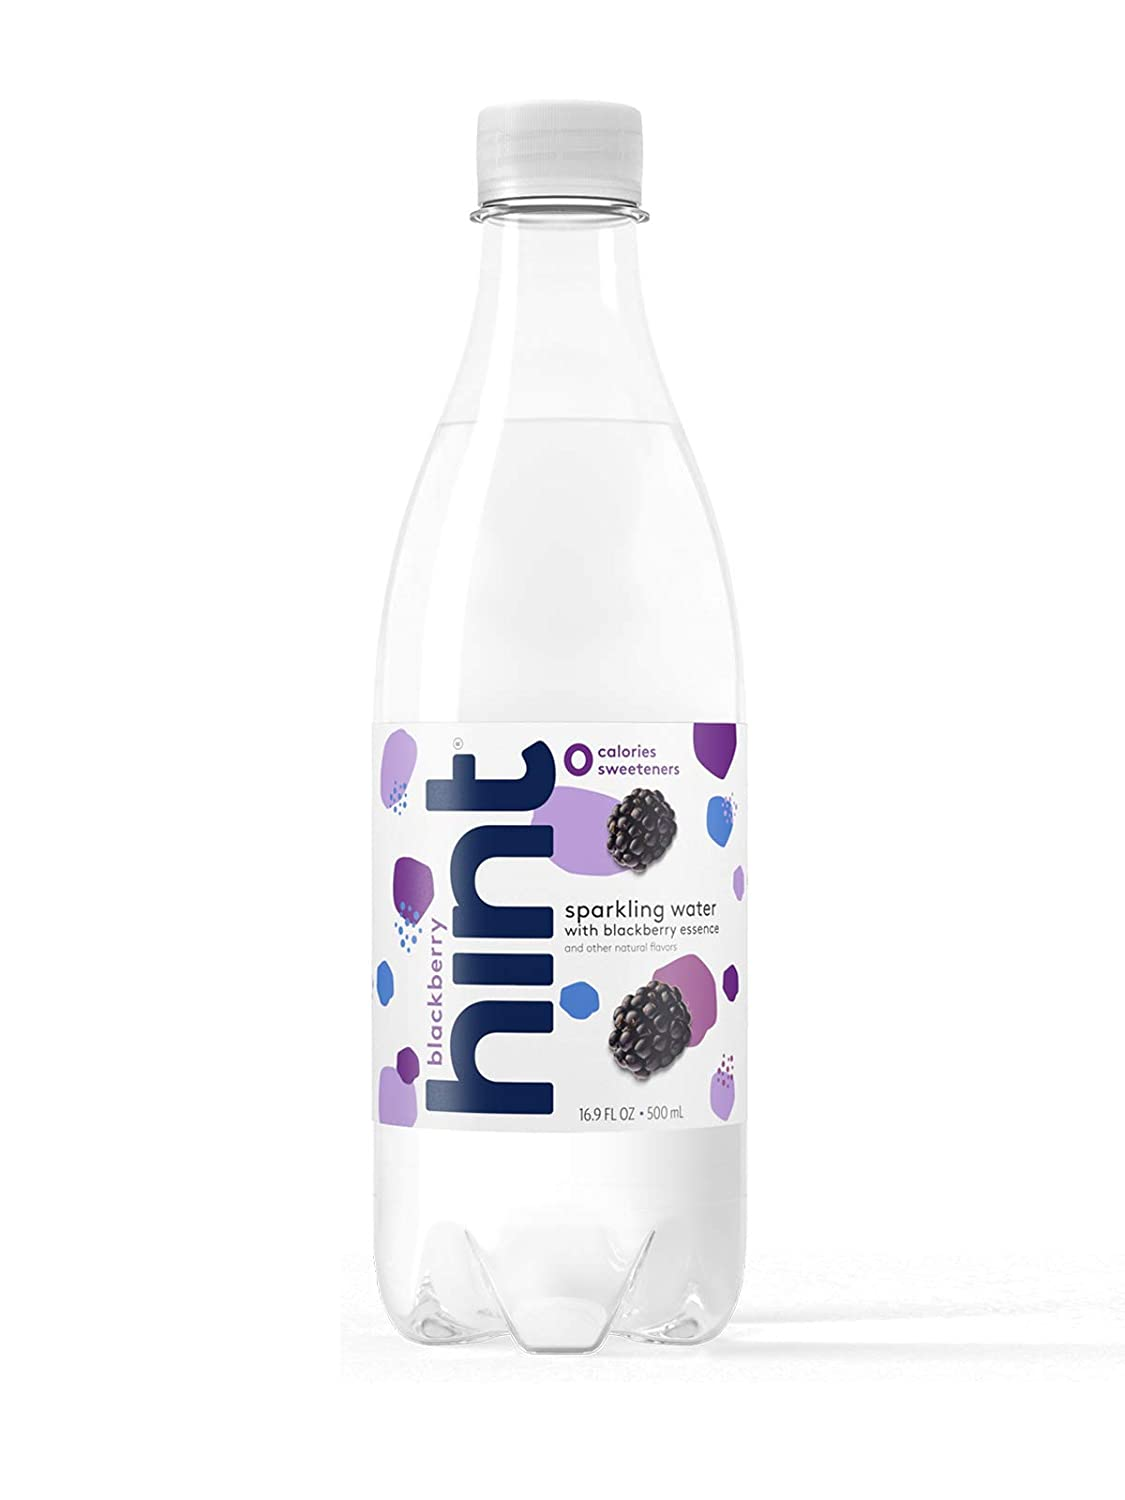 Hint Sparkling Water Blackberry, (Pack of 12) 16.9 Ounce Bottles, Unsweetened Blackberry-Infused Sparkling Water, Zero Sugar, Zero Calories, Zero Sweeteners, Zero Artificial Flavors